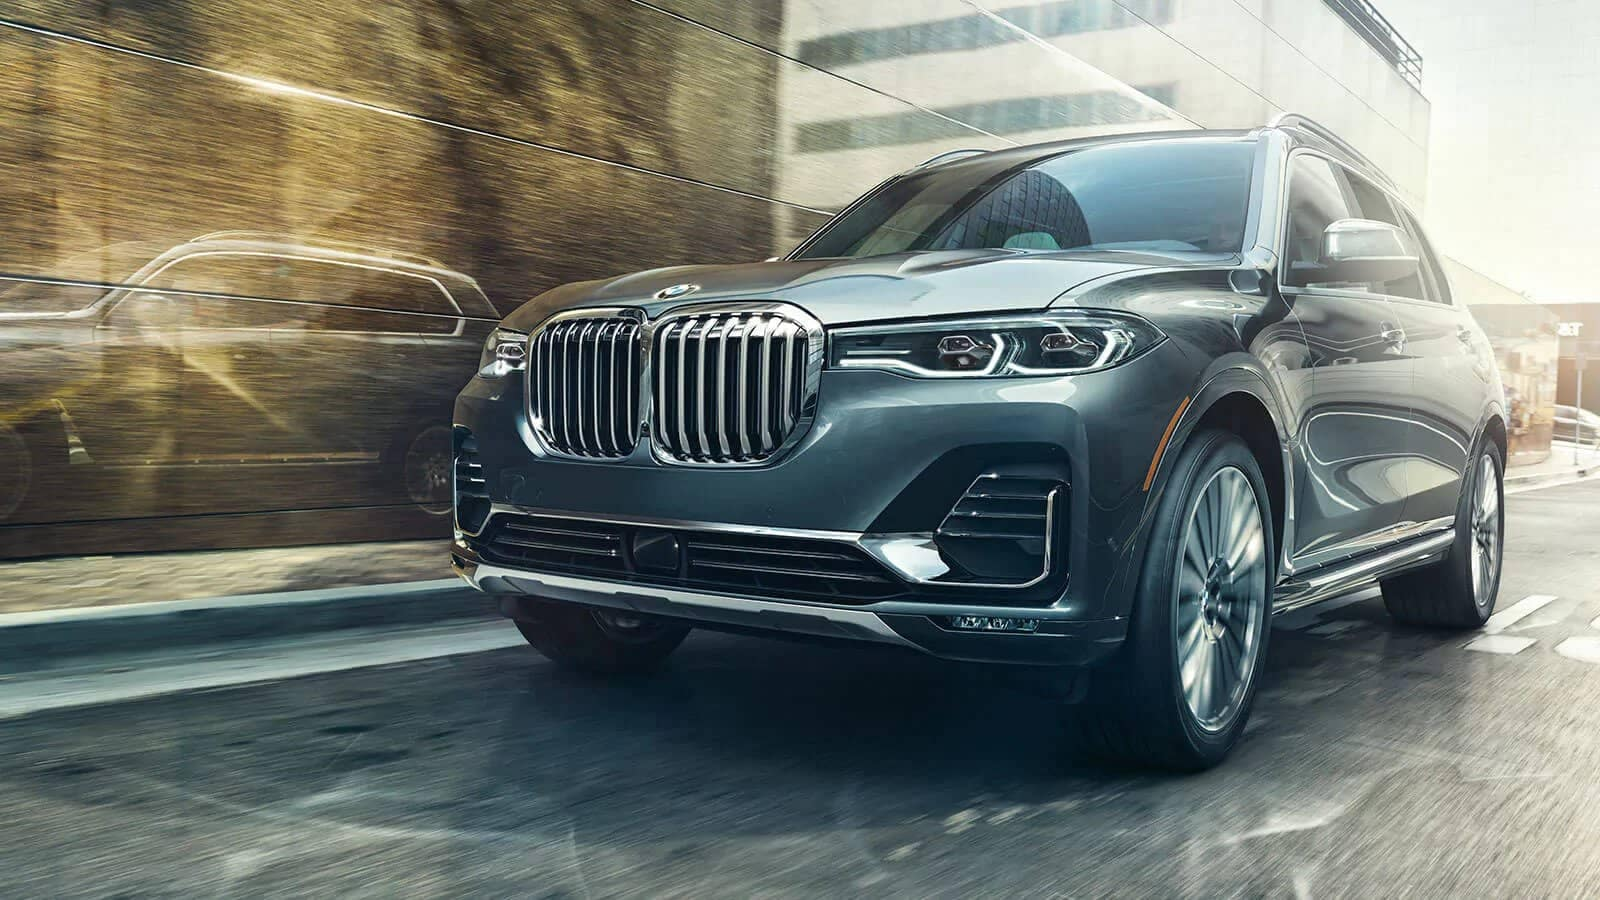 grill of BMW X7